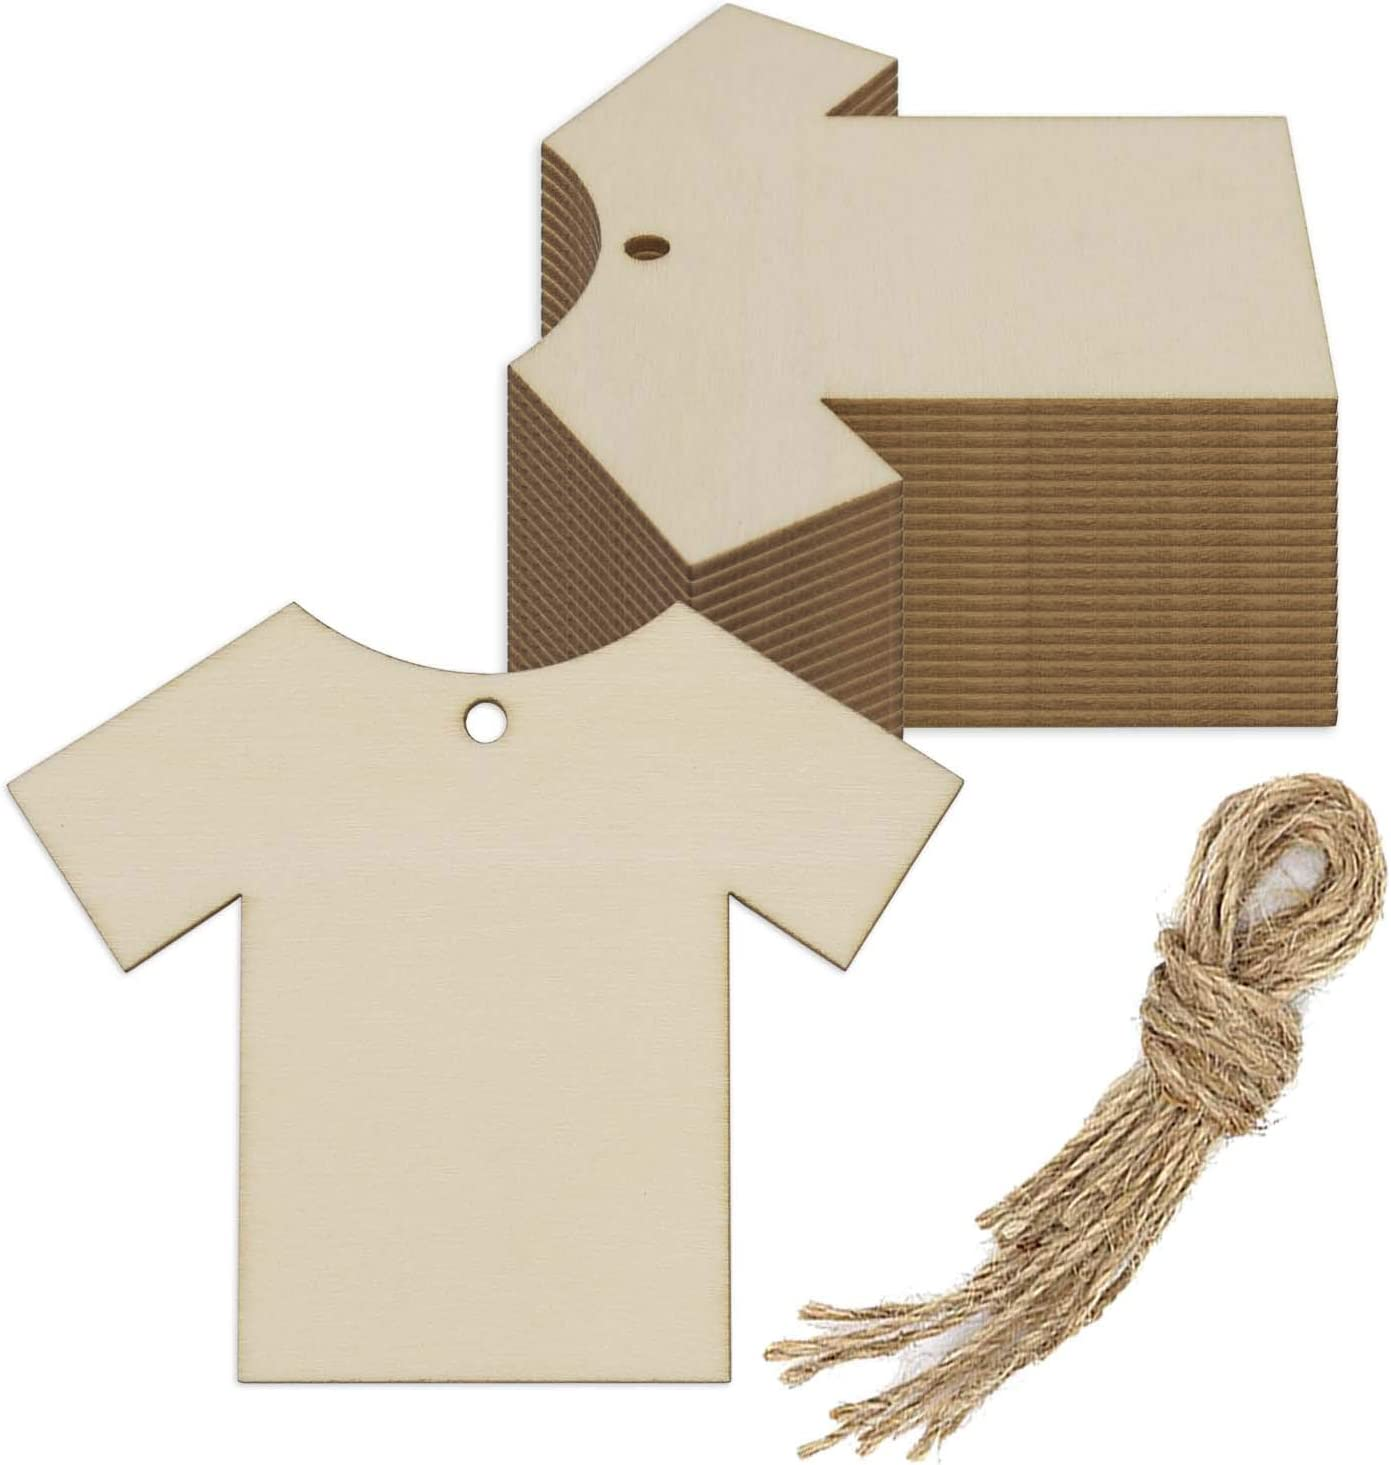 Creaides Clothes Wood Cutout DIY Crafts Wooden Shirt Shaped Ornaments Unfinished Blank Wood Tag Whit Ropes for Wedding Birthday Party Home Decoration (3.94x3.2x0.1 in, 20 Pcs)